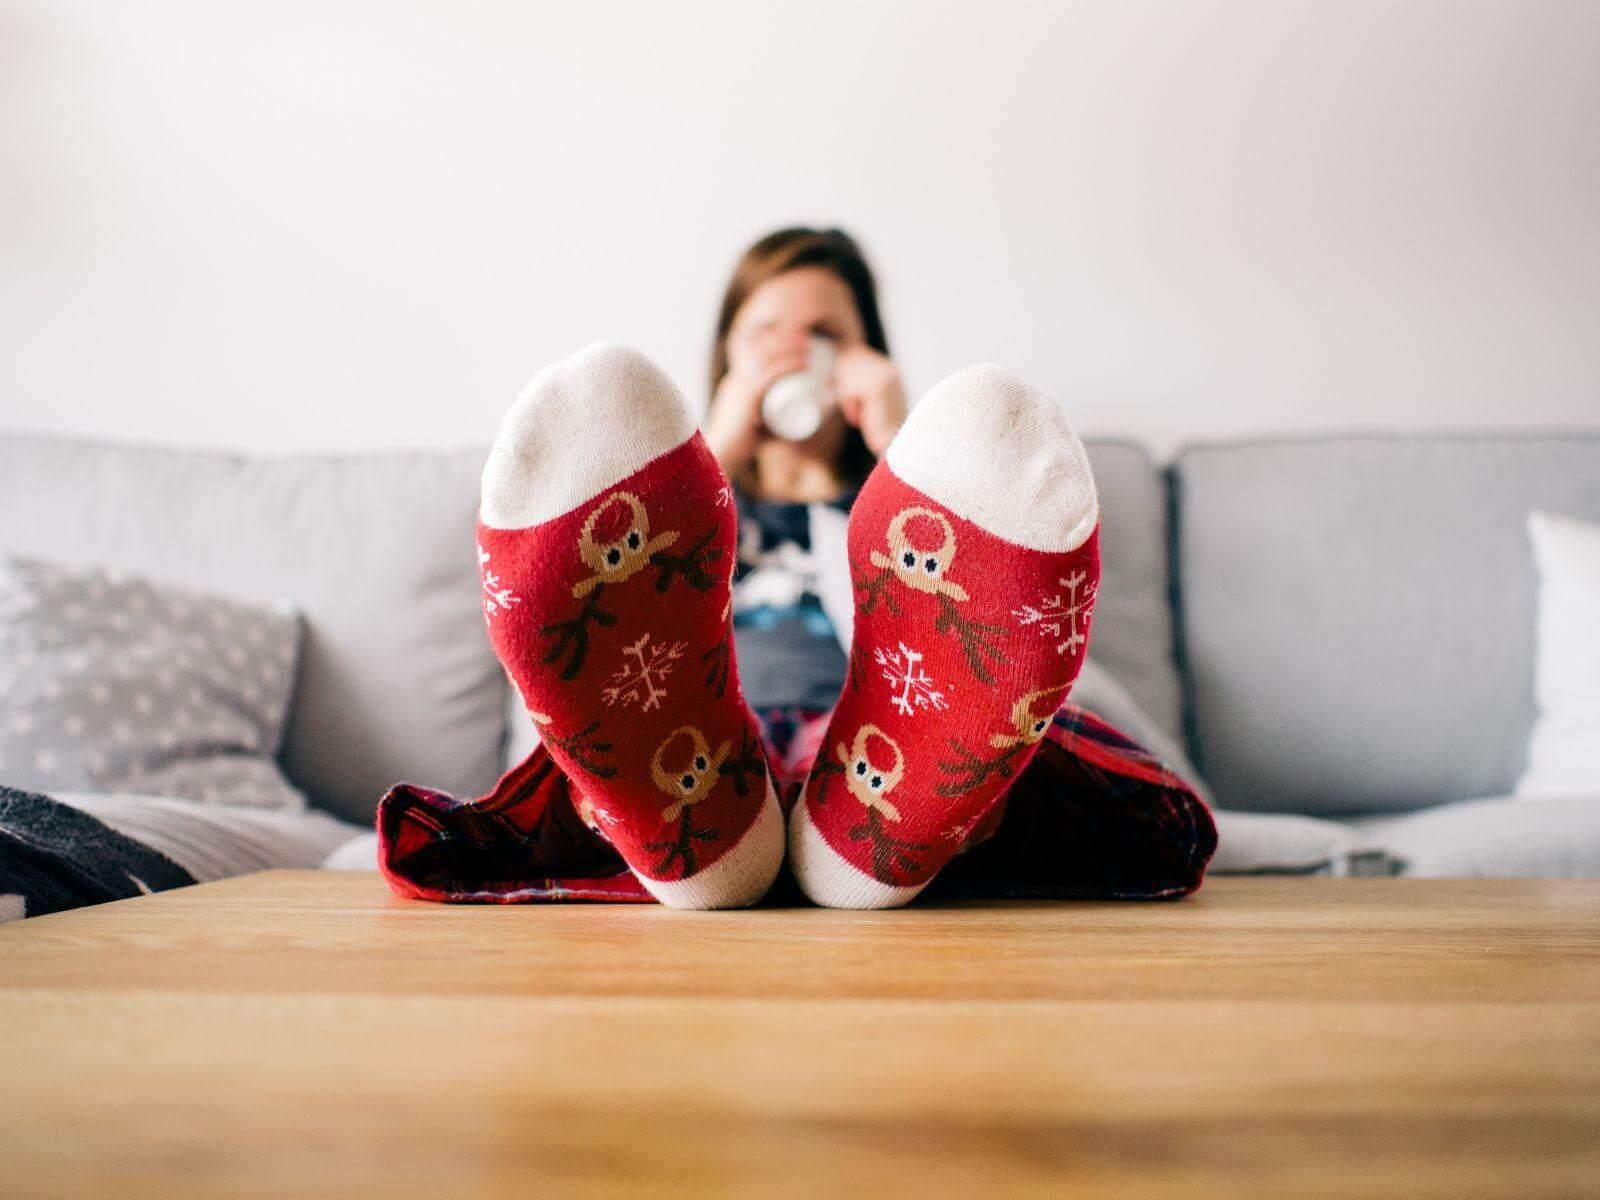 cold weather can worsen bunion pain